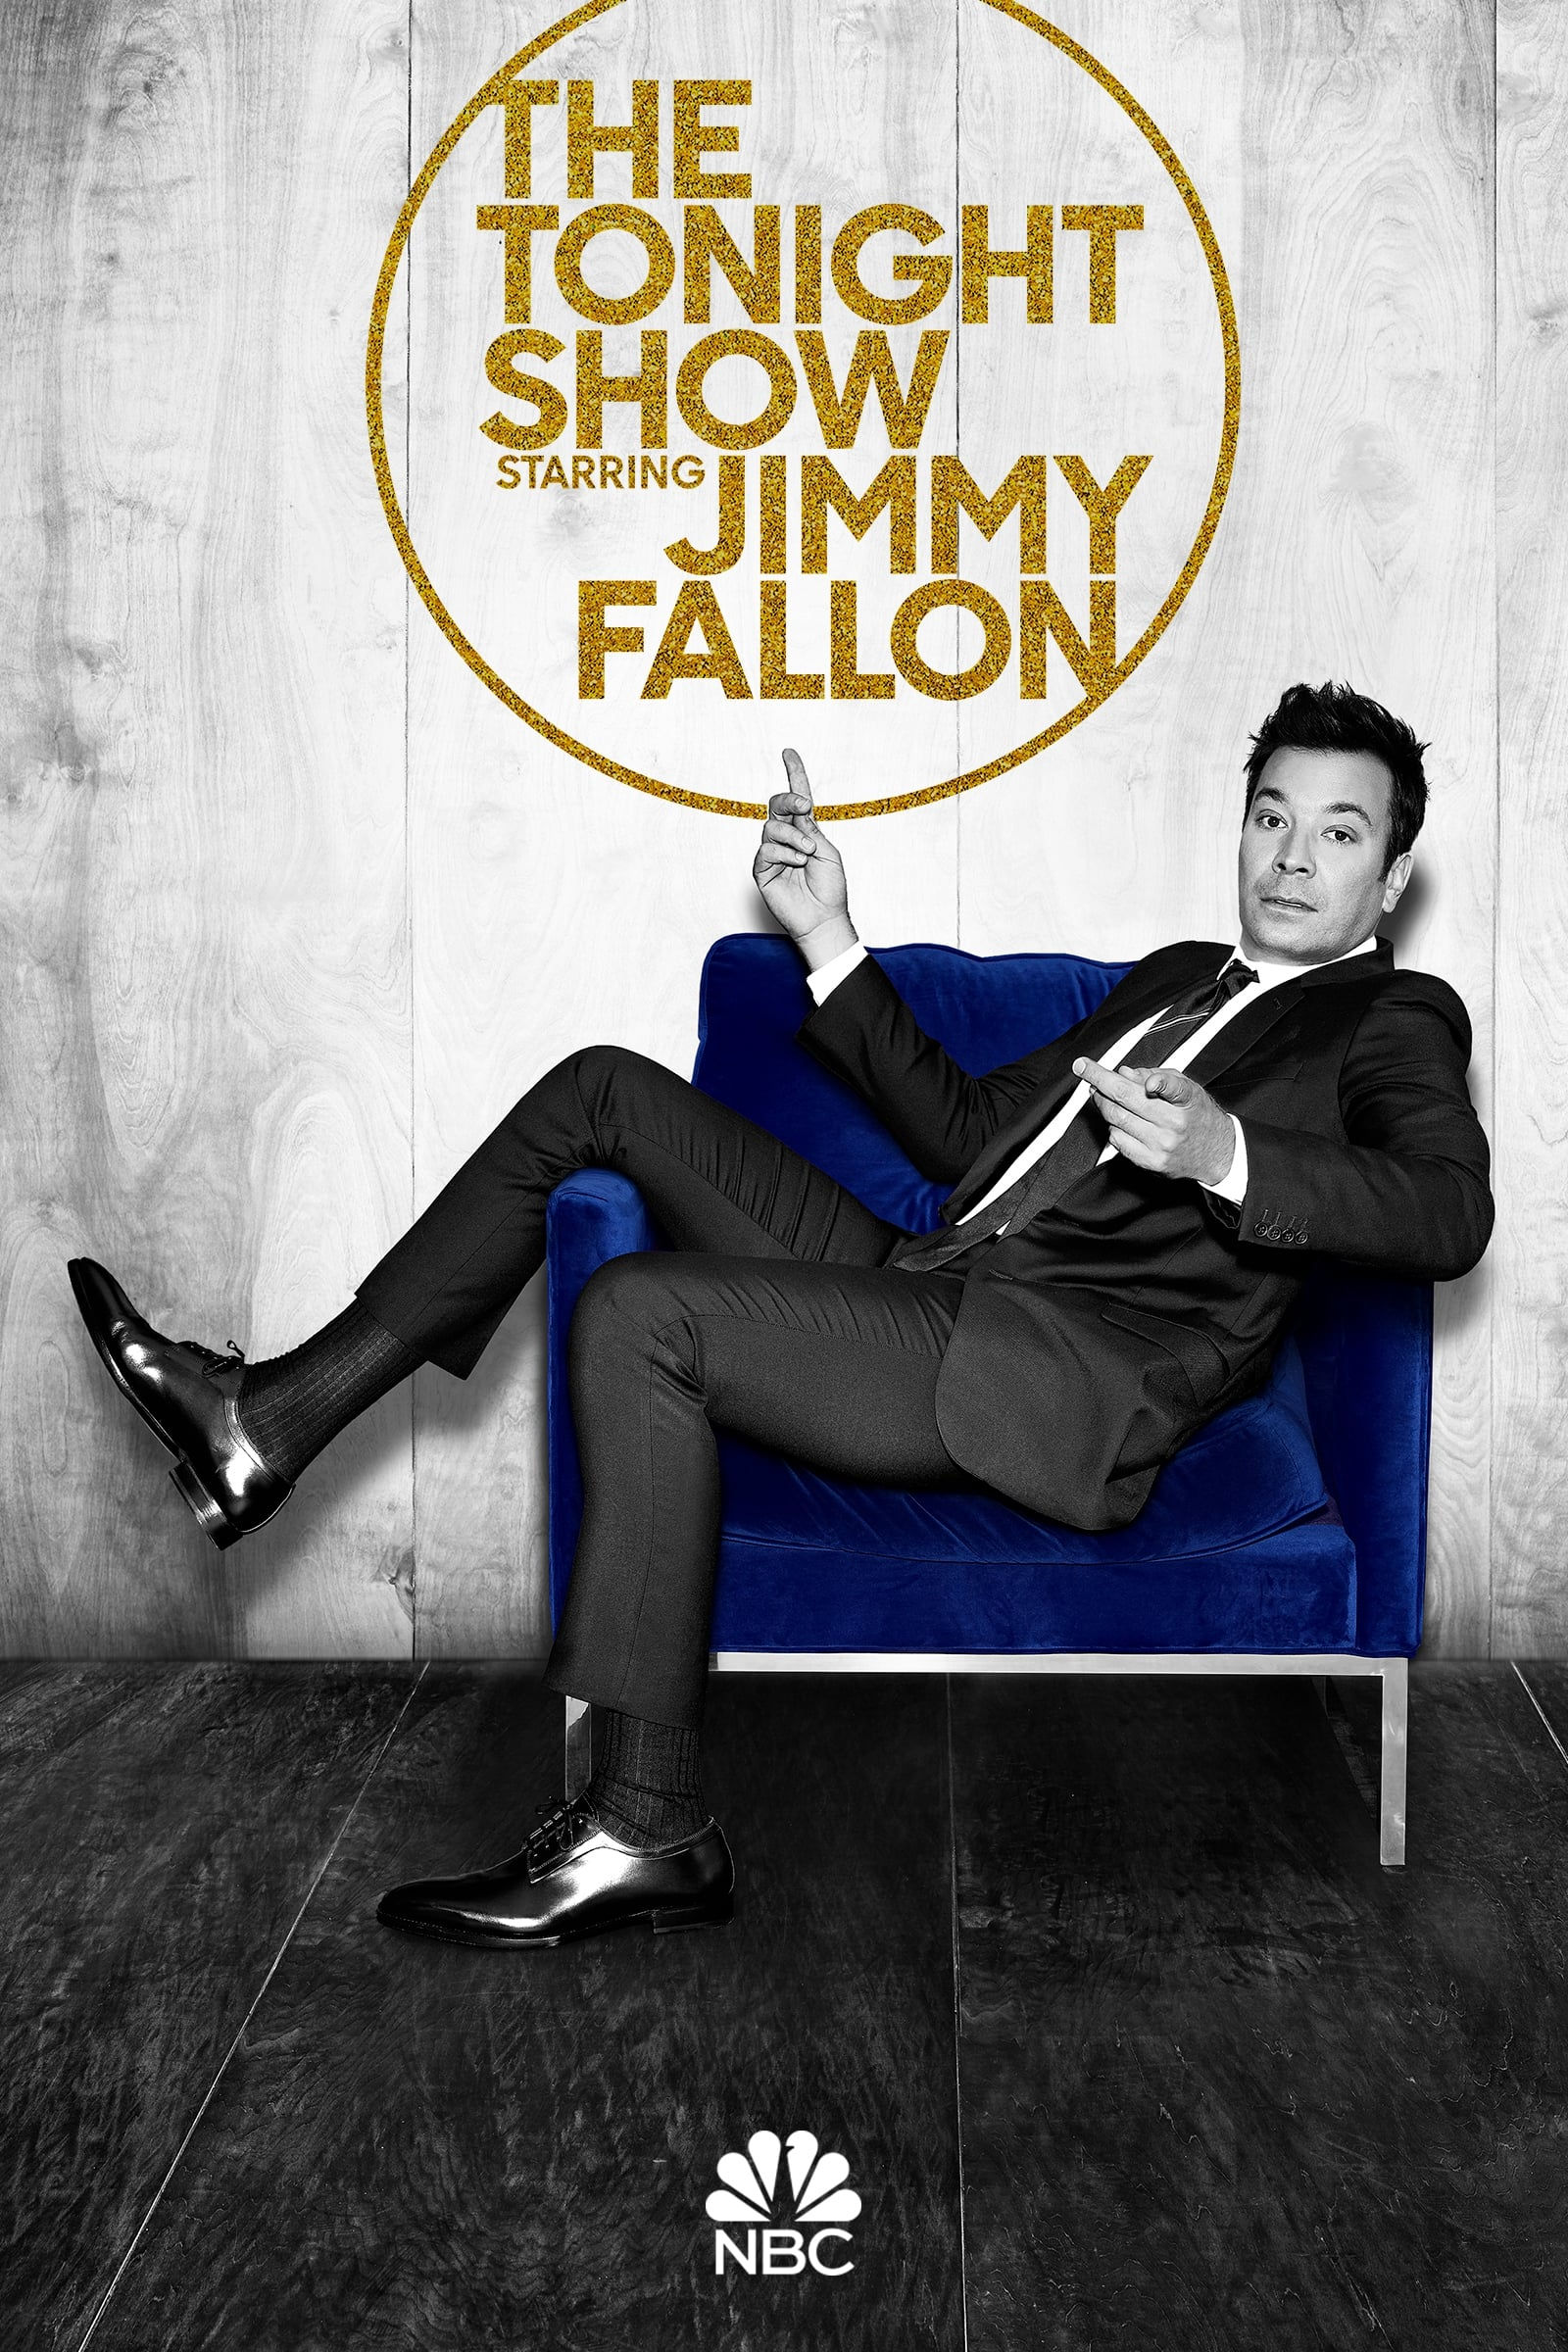 Image The Tonight Show Starring Jimmy Fallon